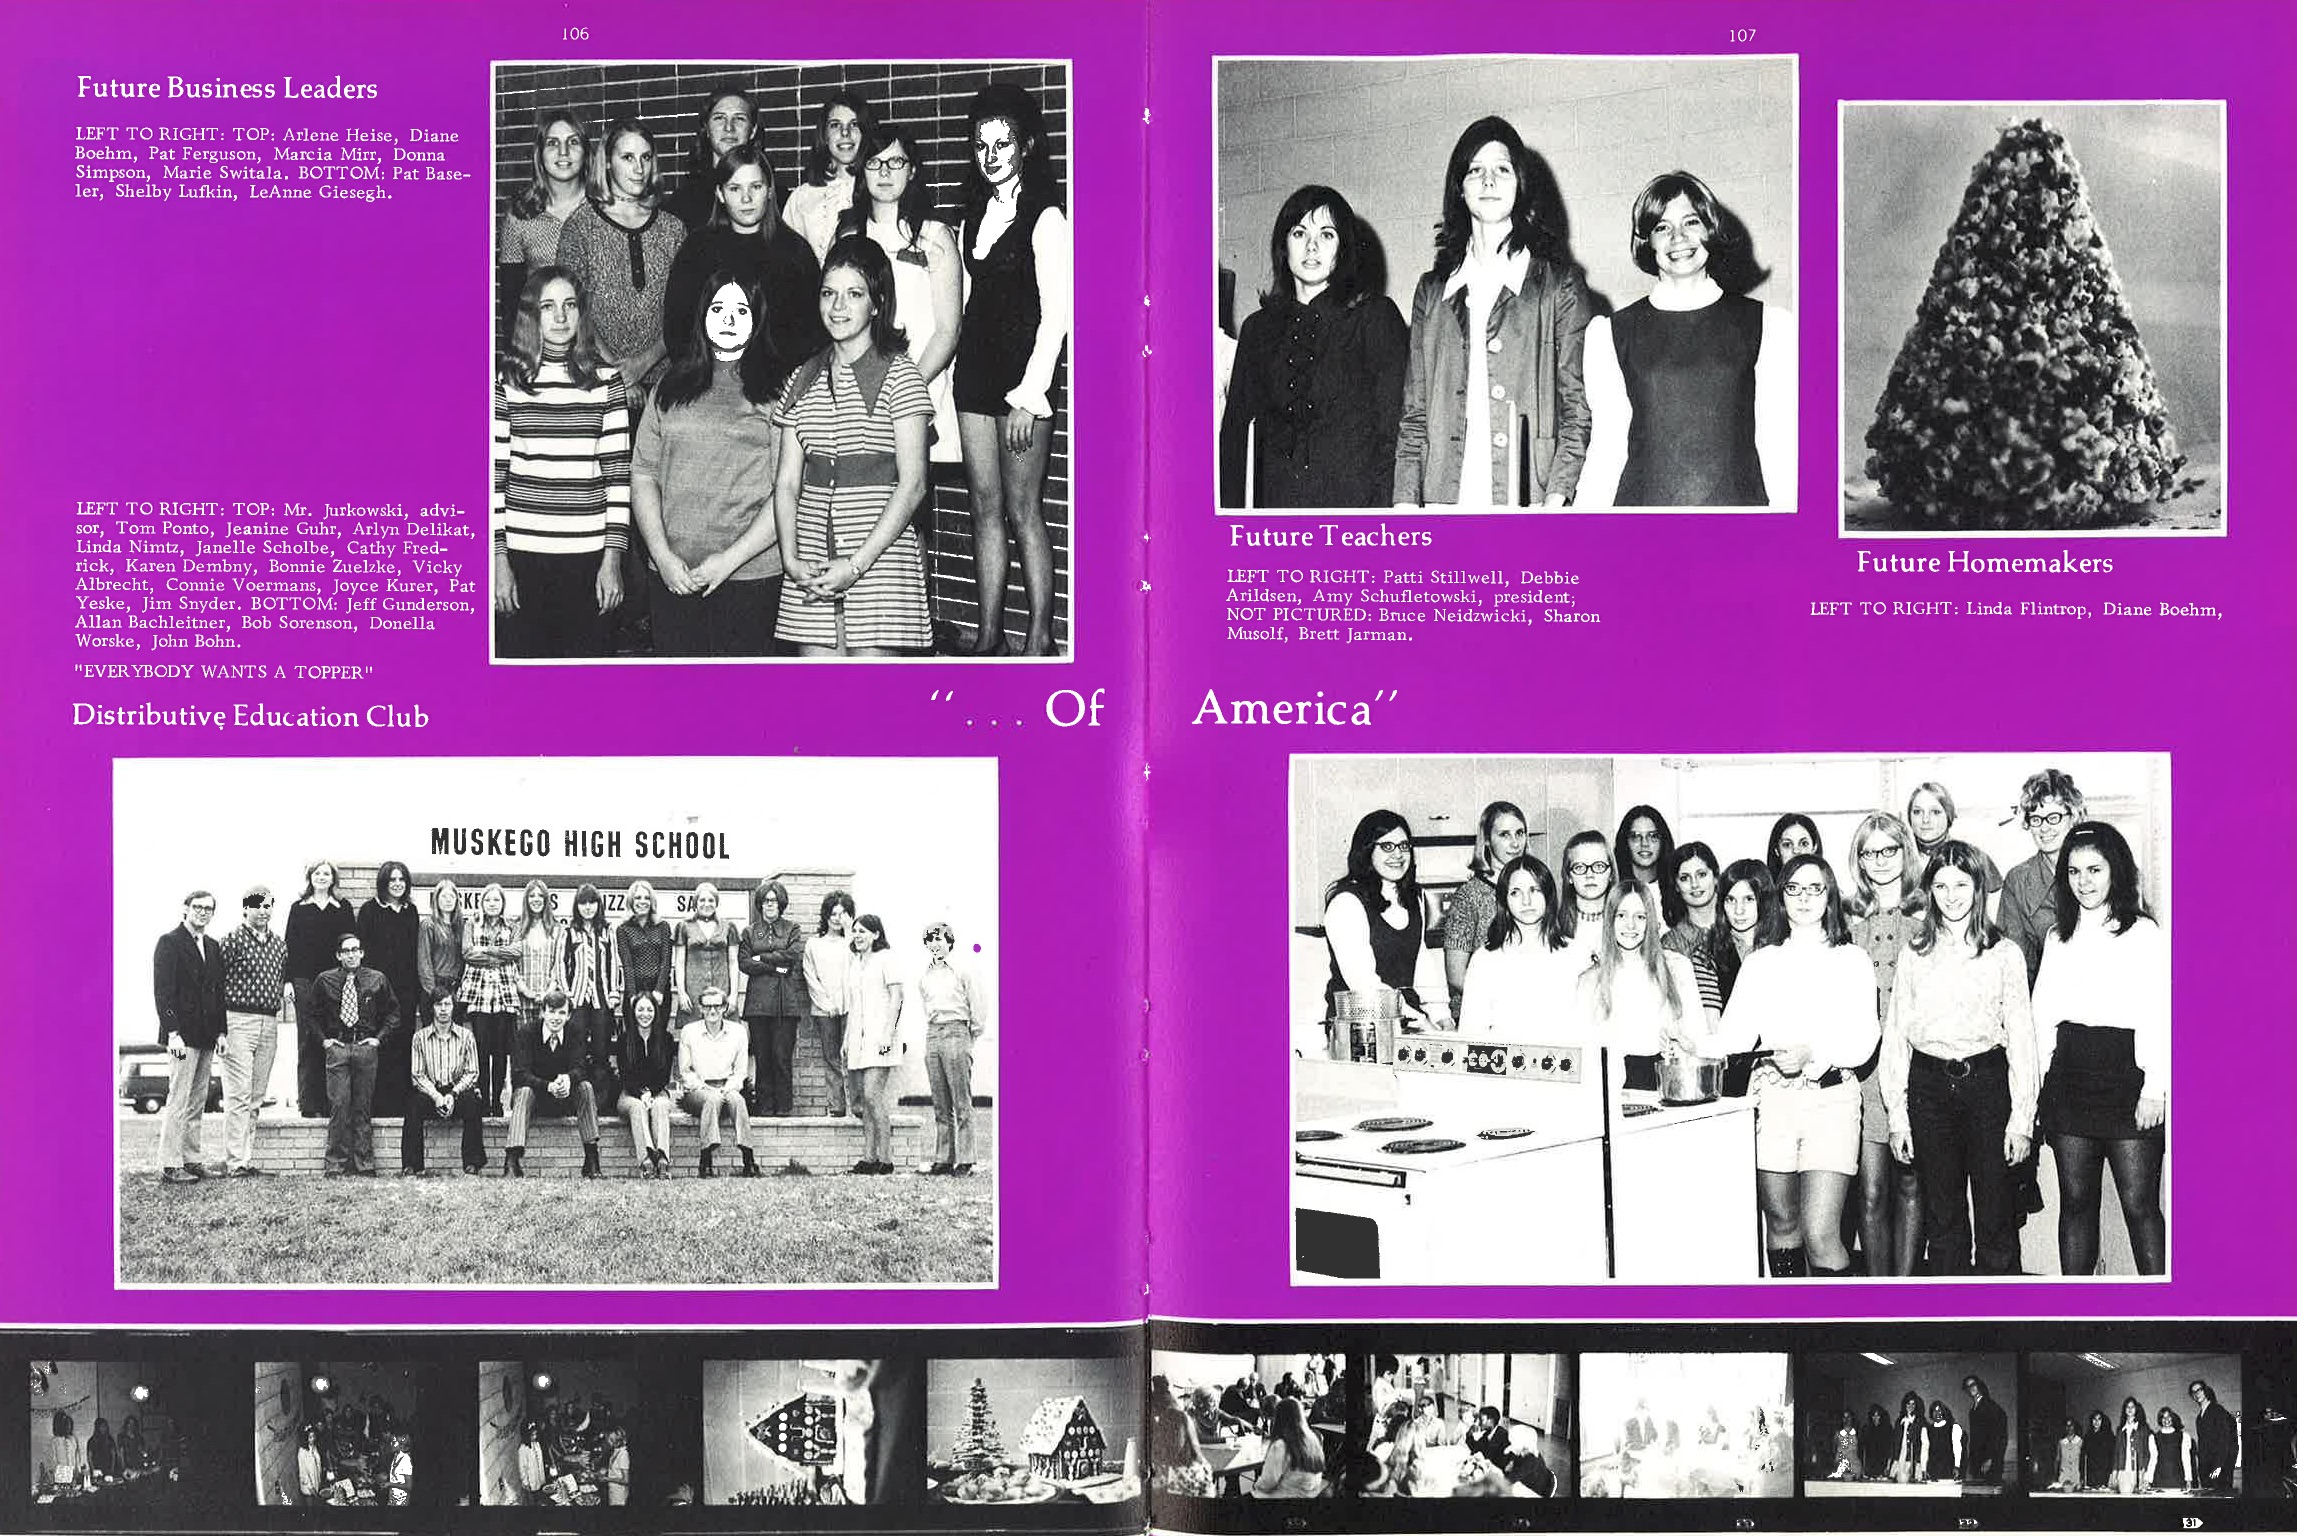 1972_Yearbook_106-107.jpg